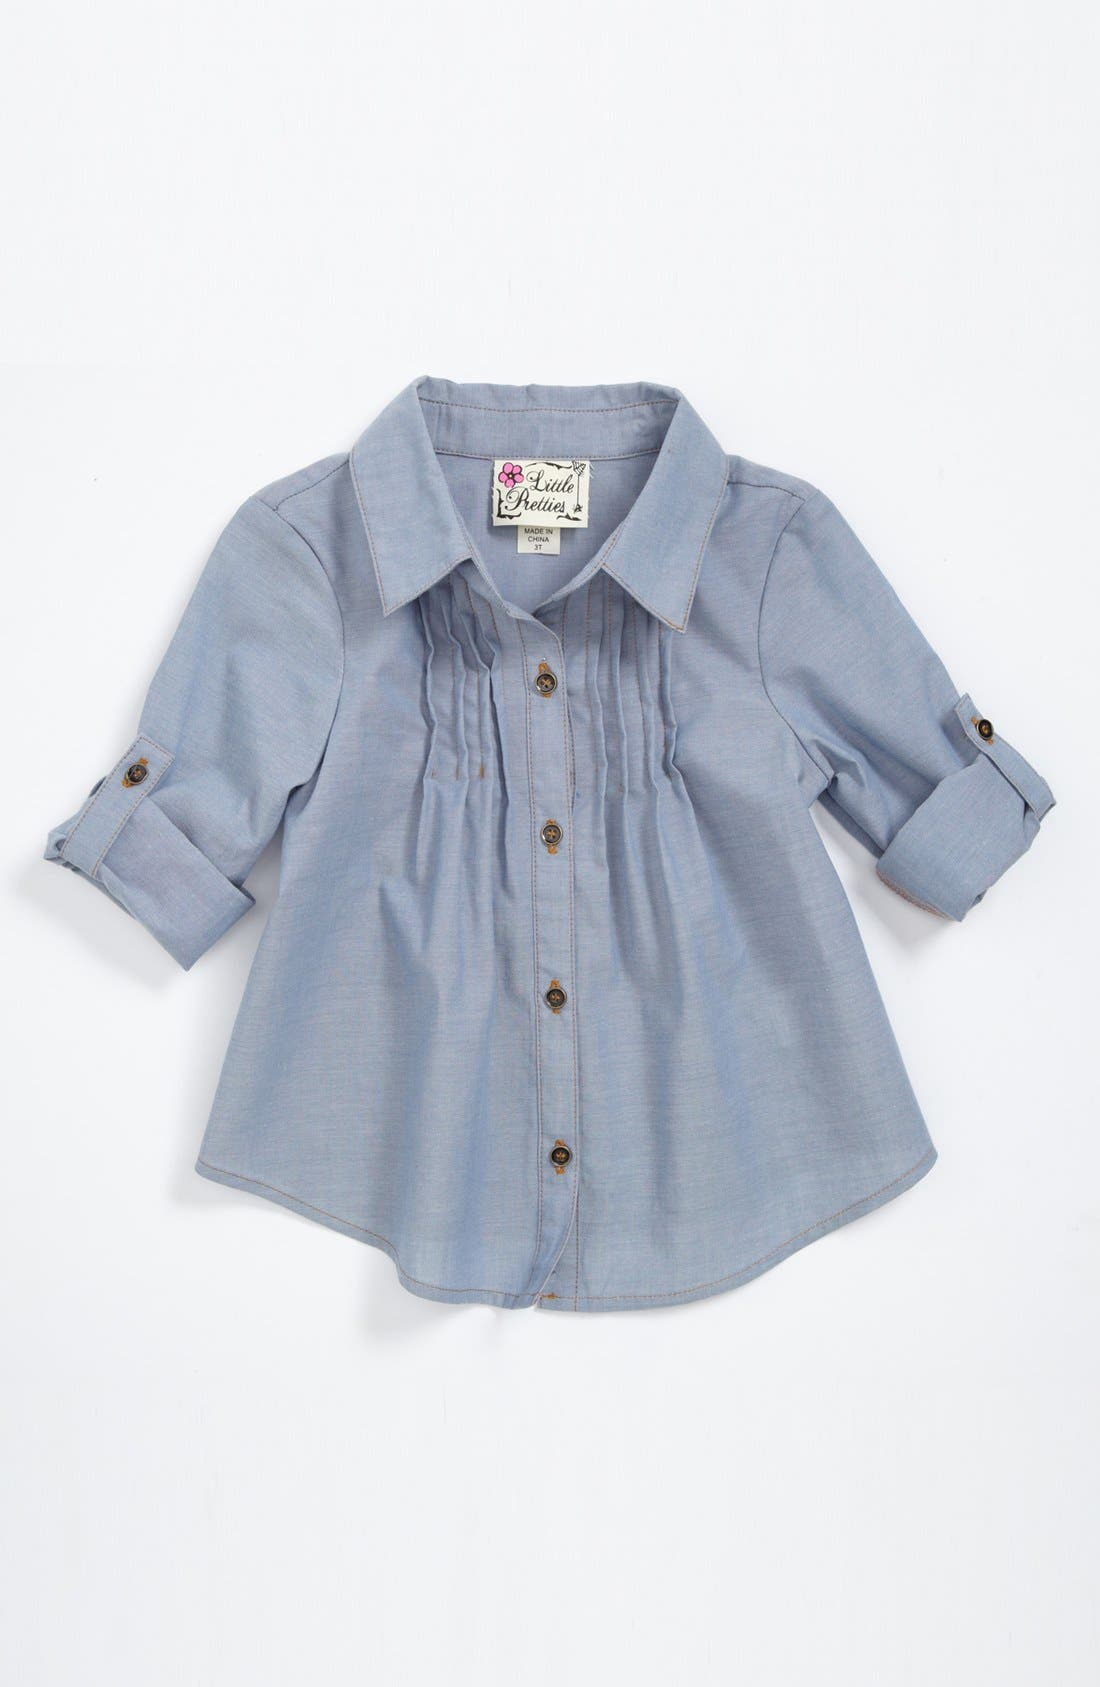 Alternate Image 1 Selected - Little Pretties Chambray Tunic (Toddler Girls)